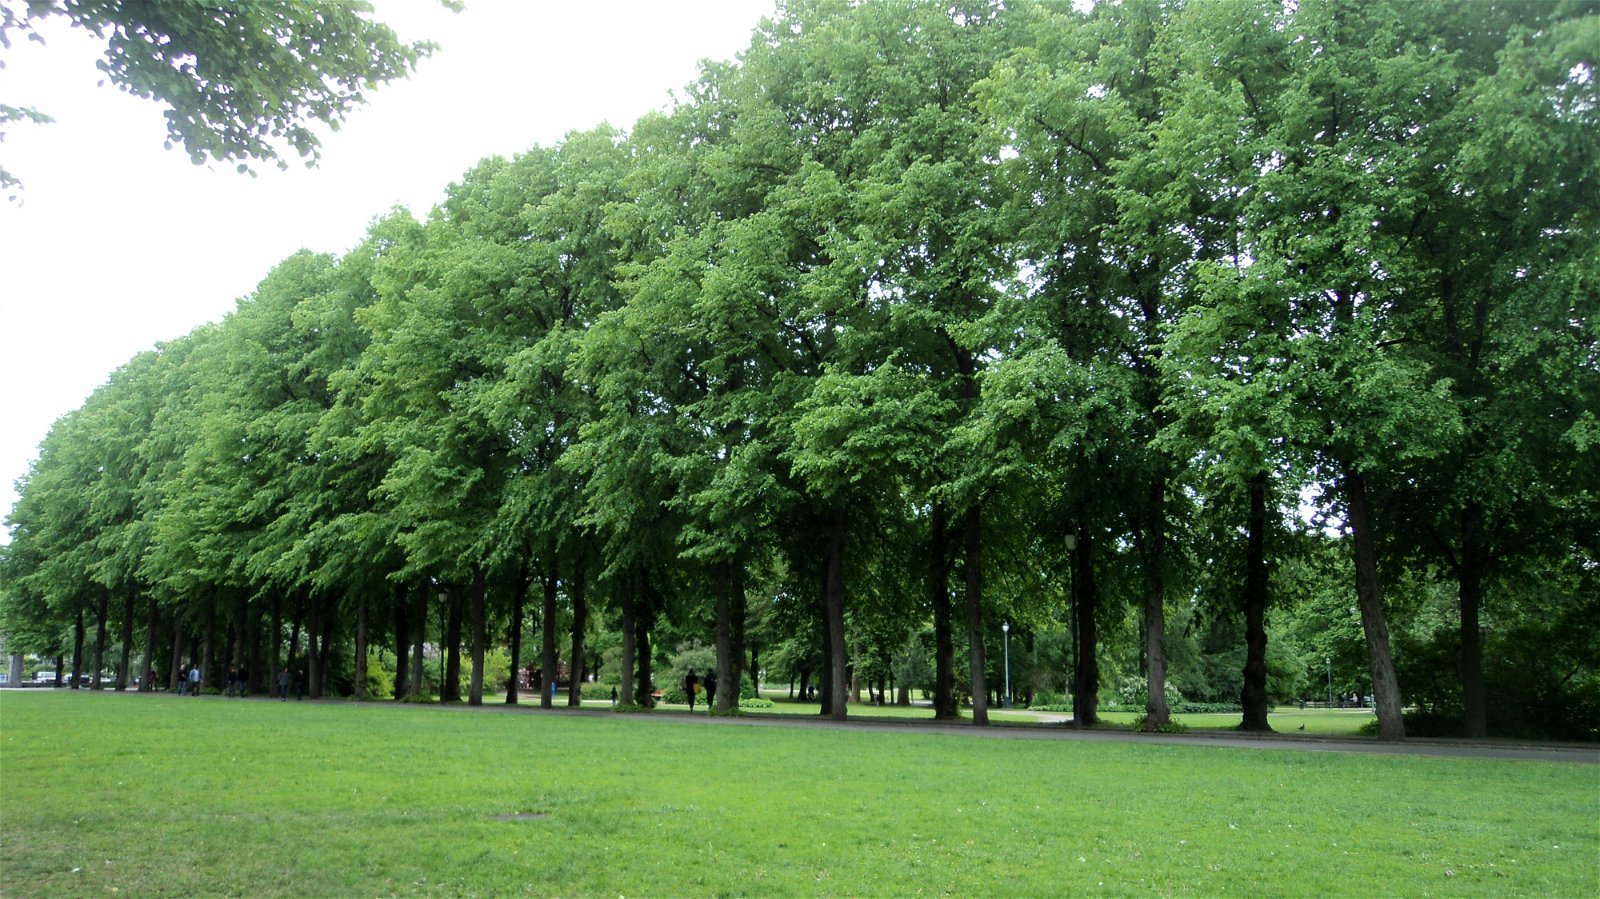 1625964186_671_Essay-On-Uses-of-Trees-For-Students-And-Children-In